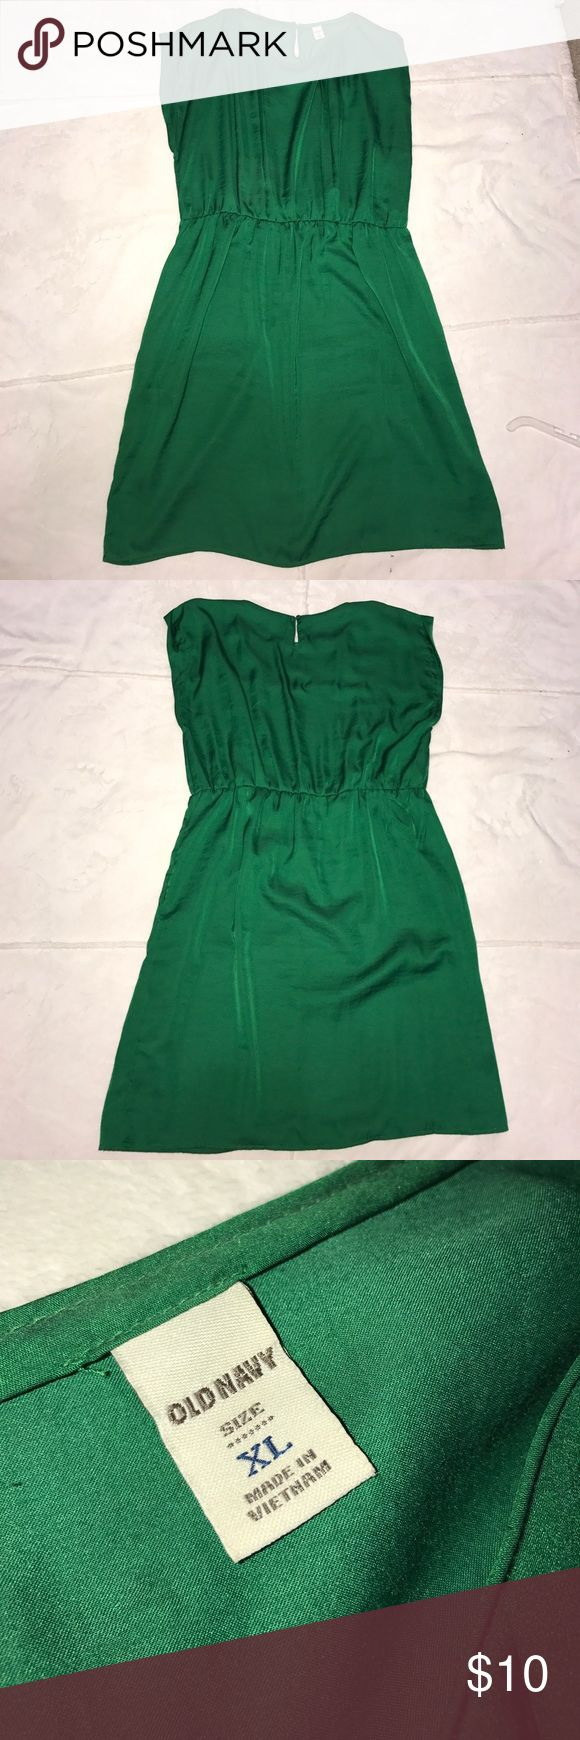 Kelly green dress Kelly green Old Navy knee length dress. Can be dressed up or worn casual. Great condition! Fast shipping!! Old Navy Dresses